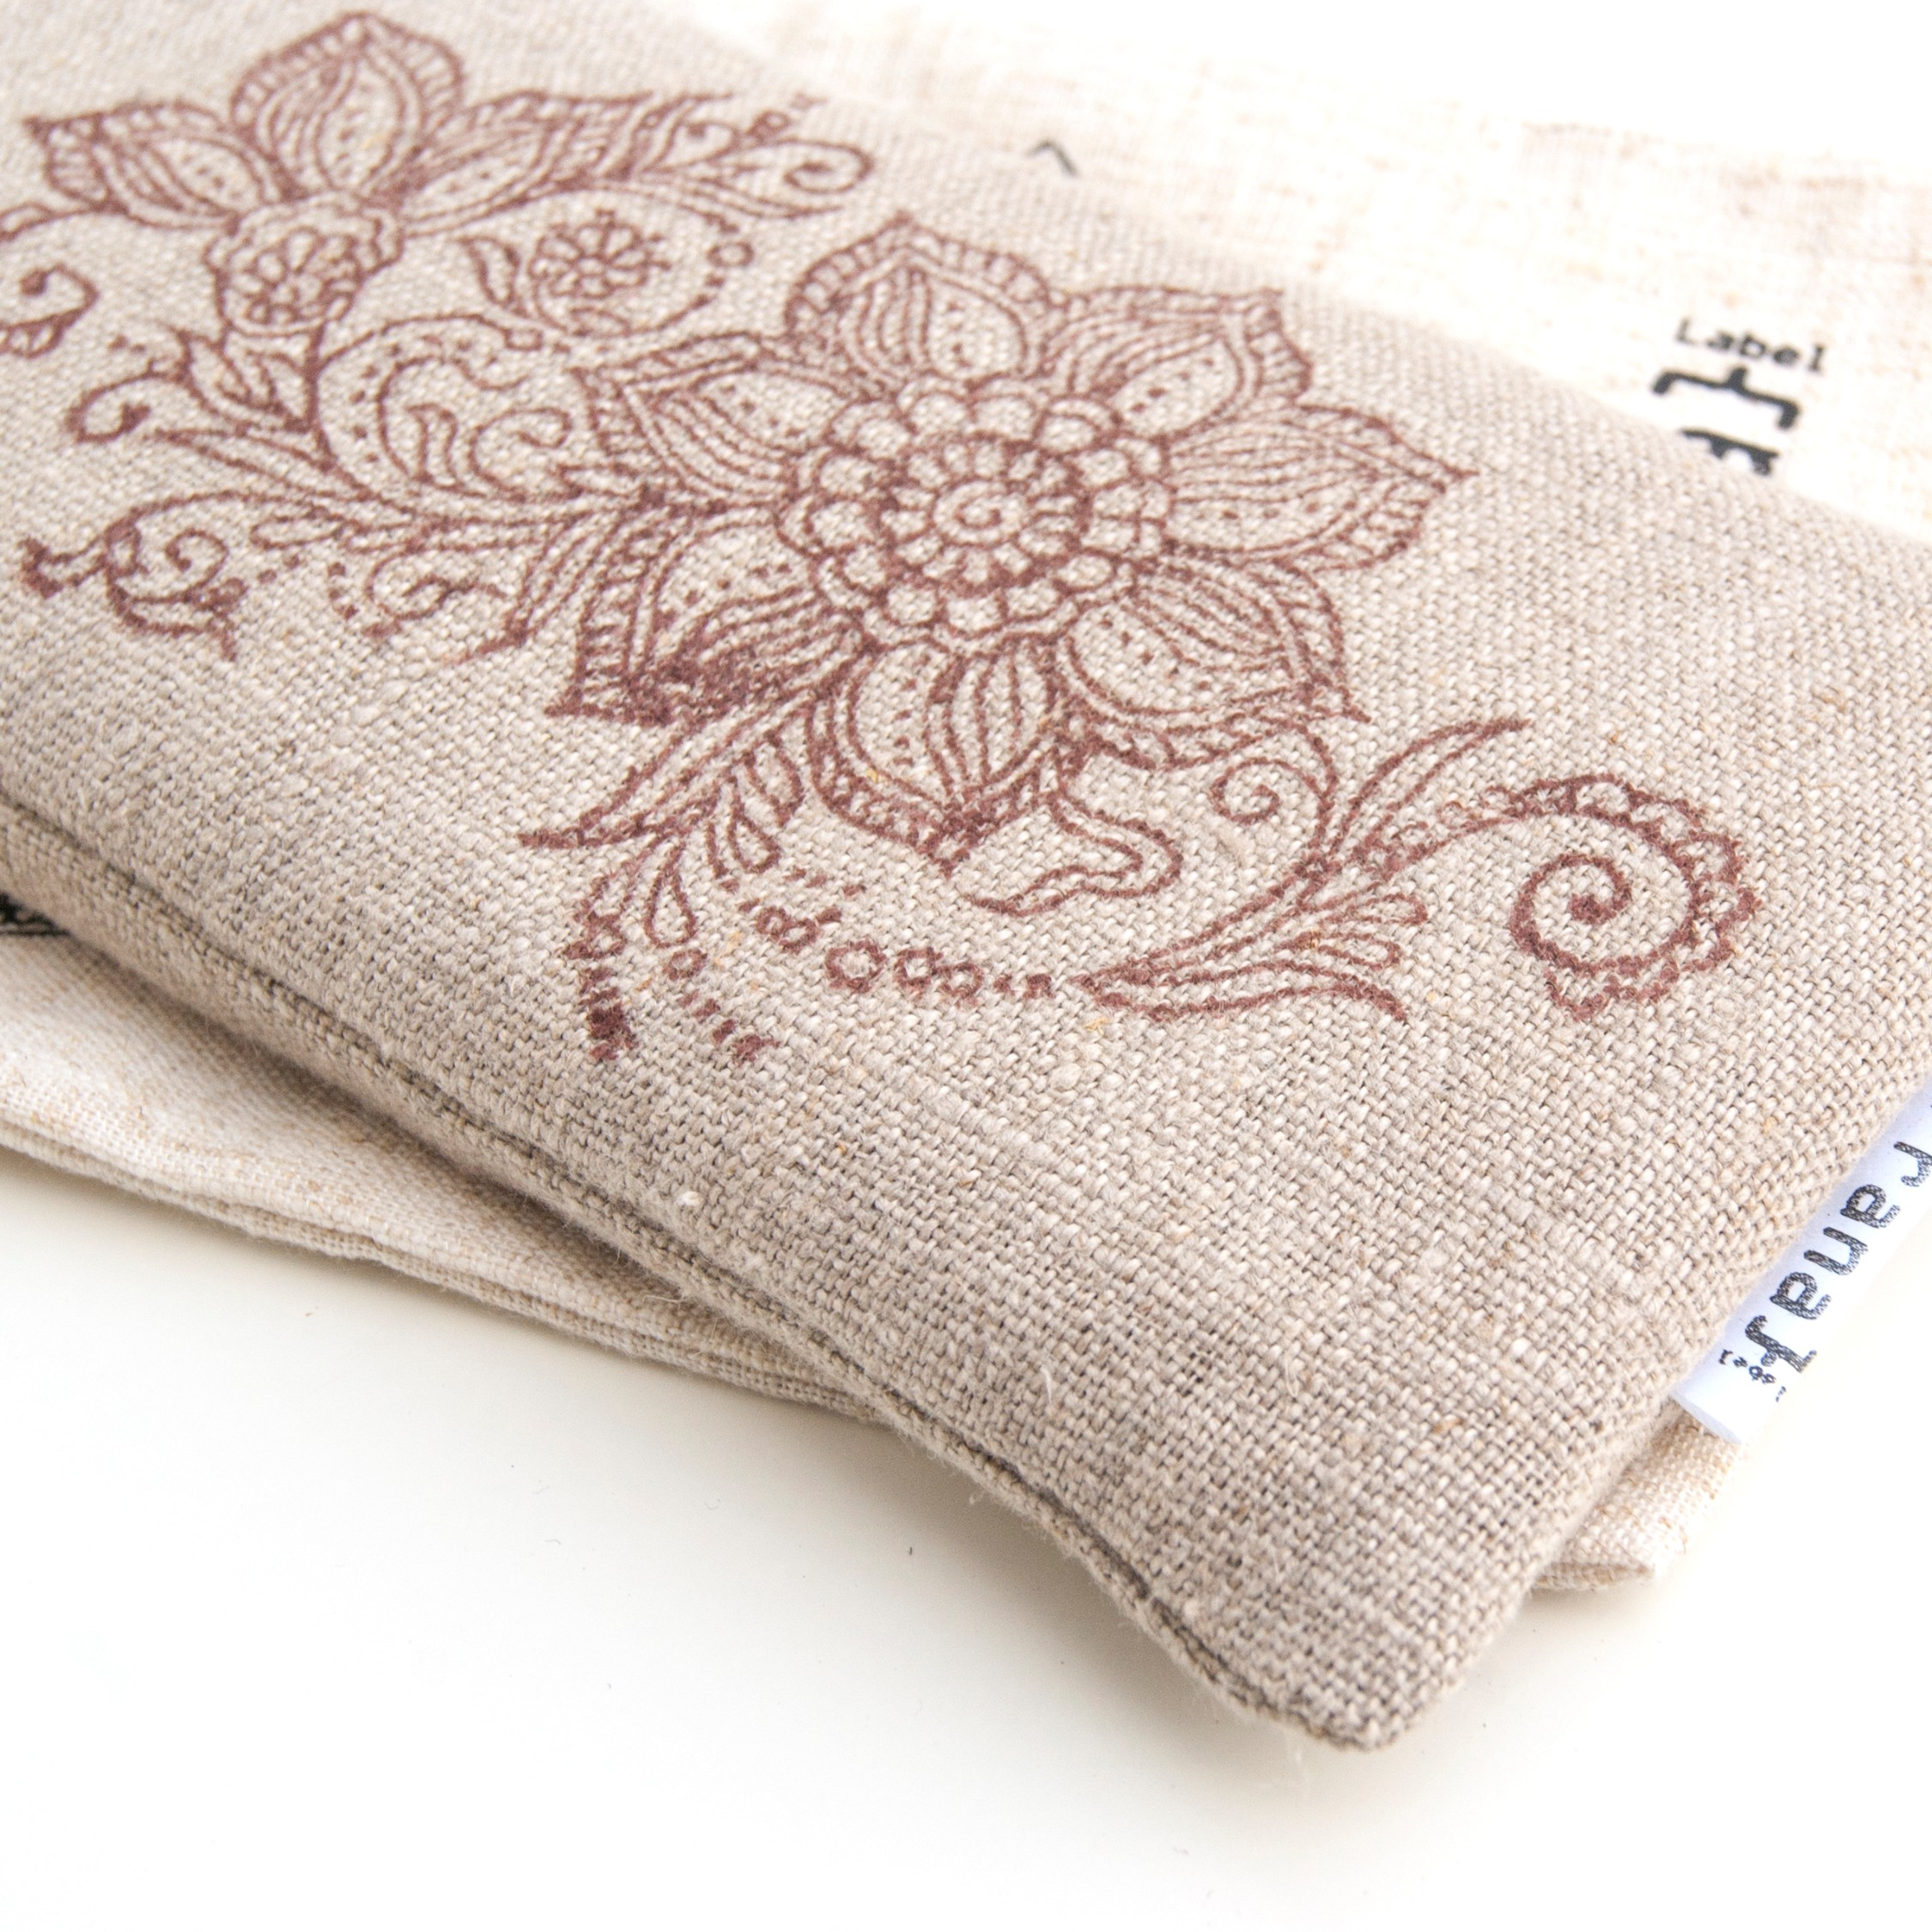 Yoga eye pillow floral